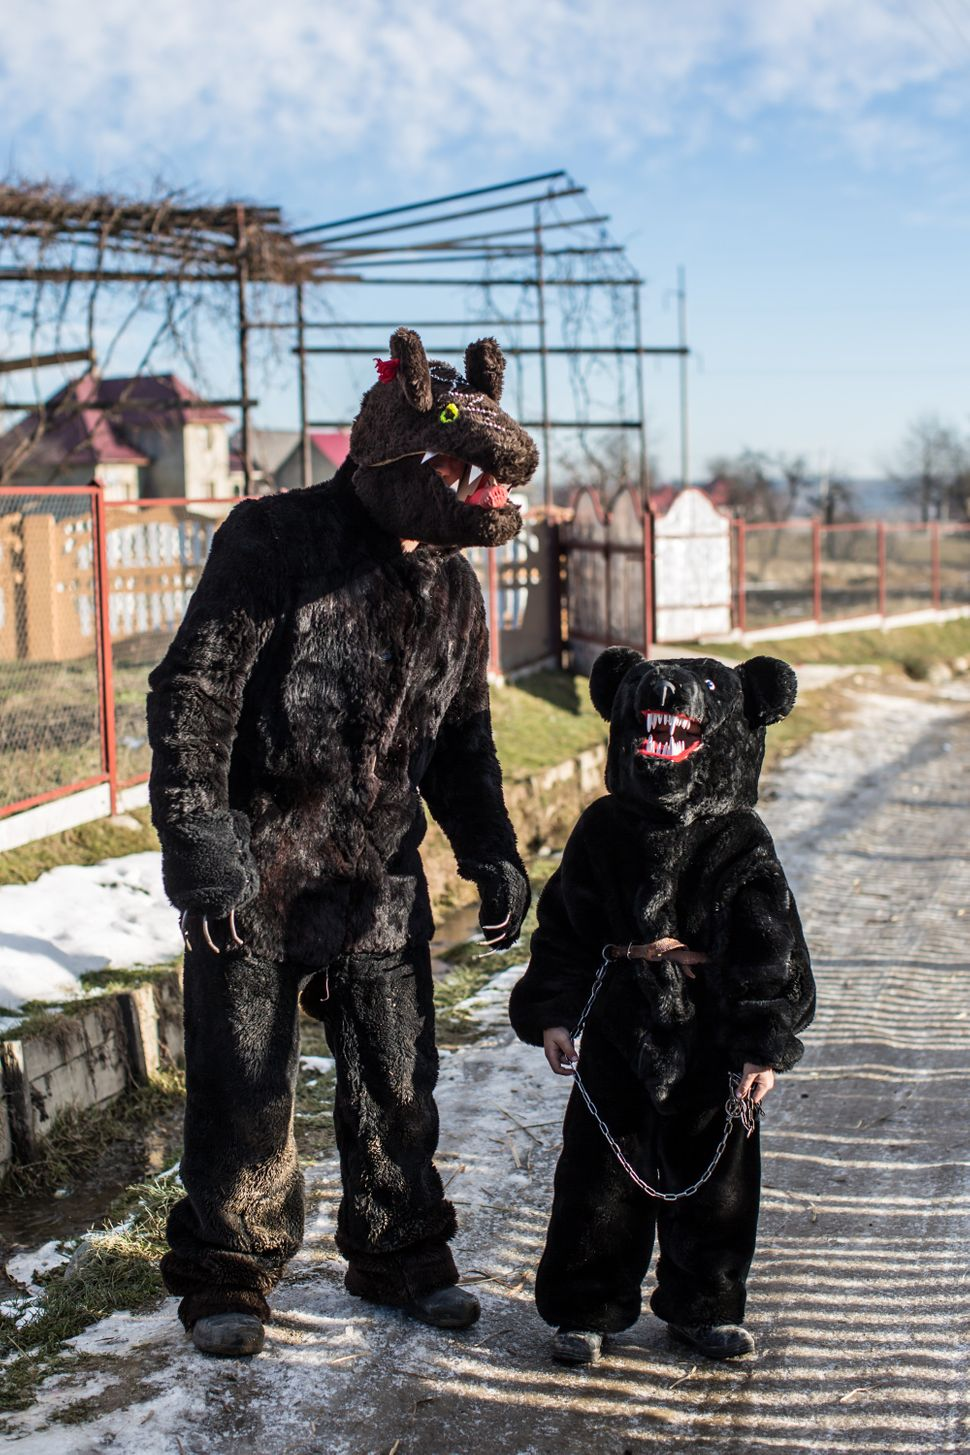 Villagers dress up in bear costumes as they celebrate the winter festival of Malanka on January 14, 2015 in Krasnoilsk, Ukrai